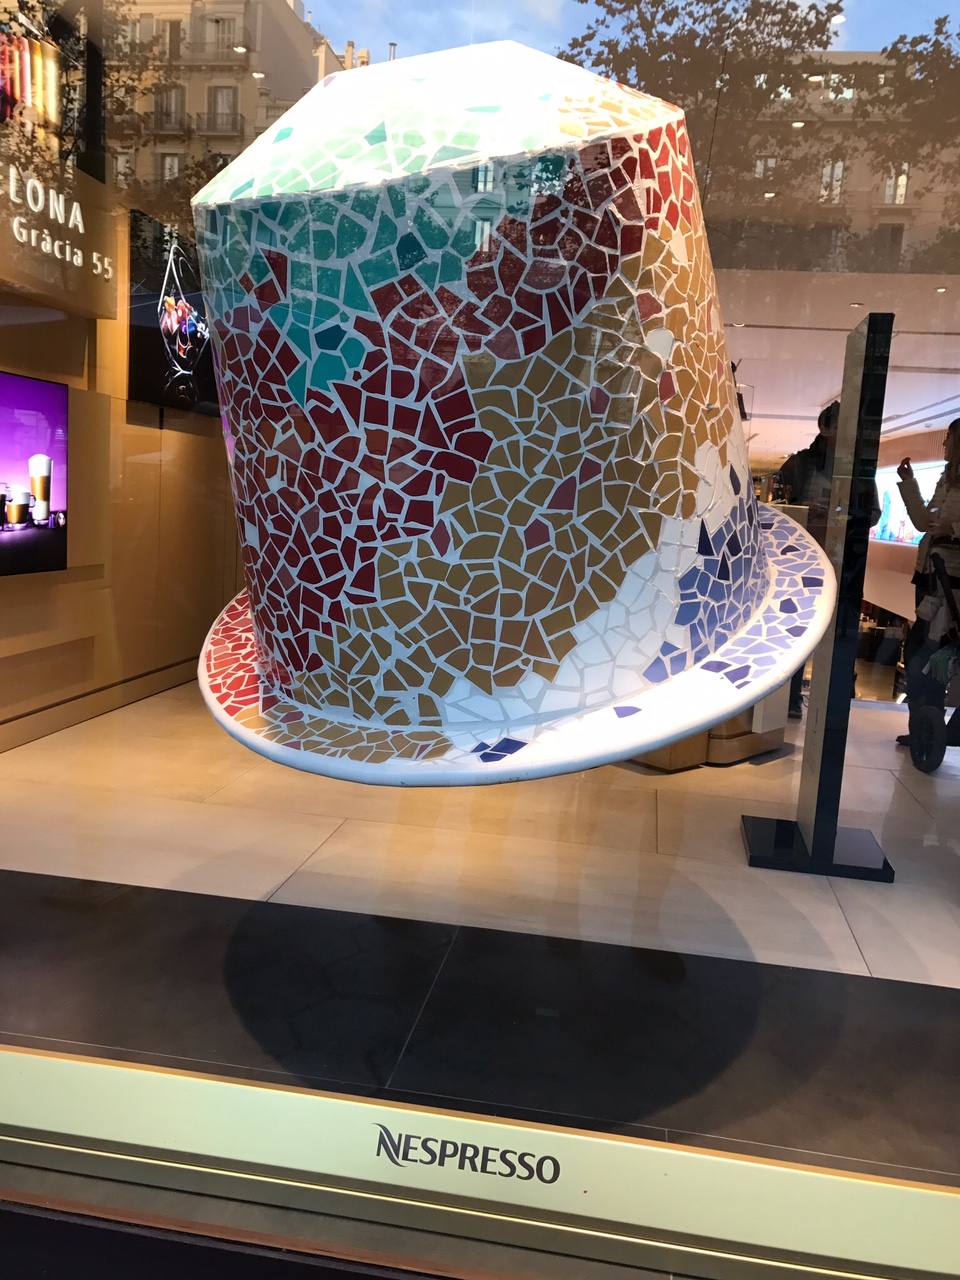 Giant Nespresso pod made of mosaic tiles!